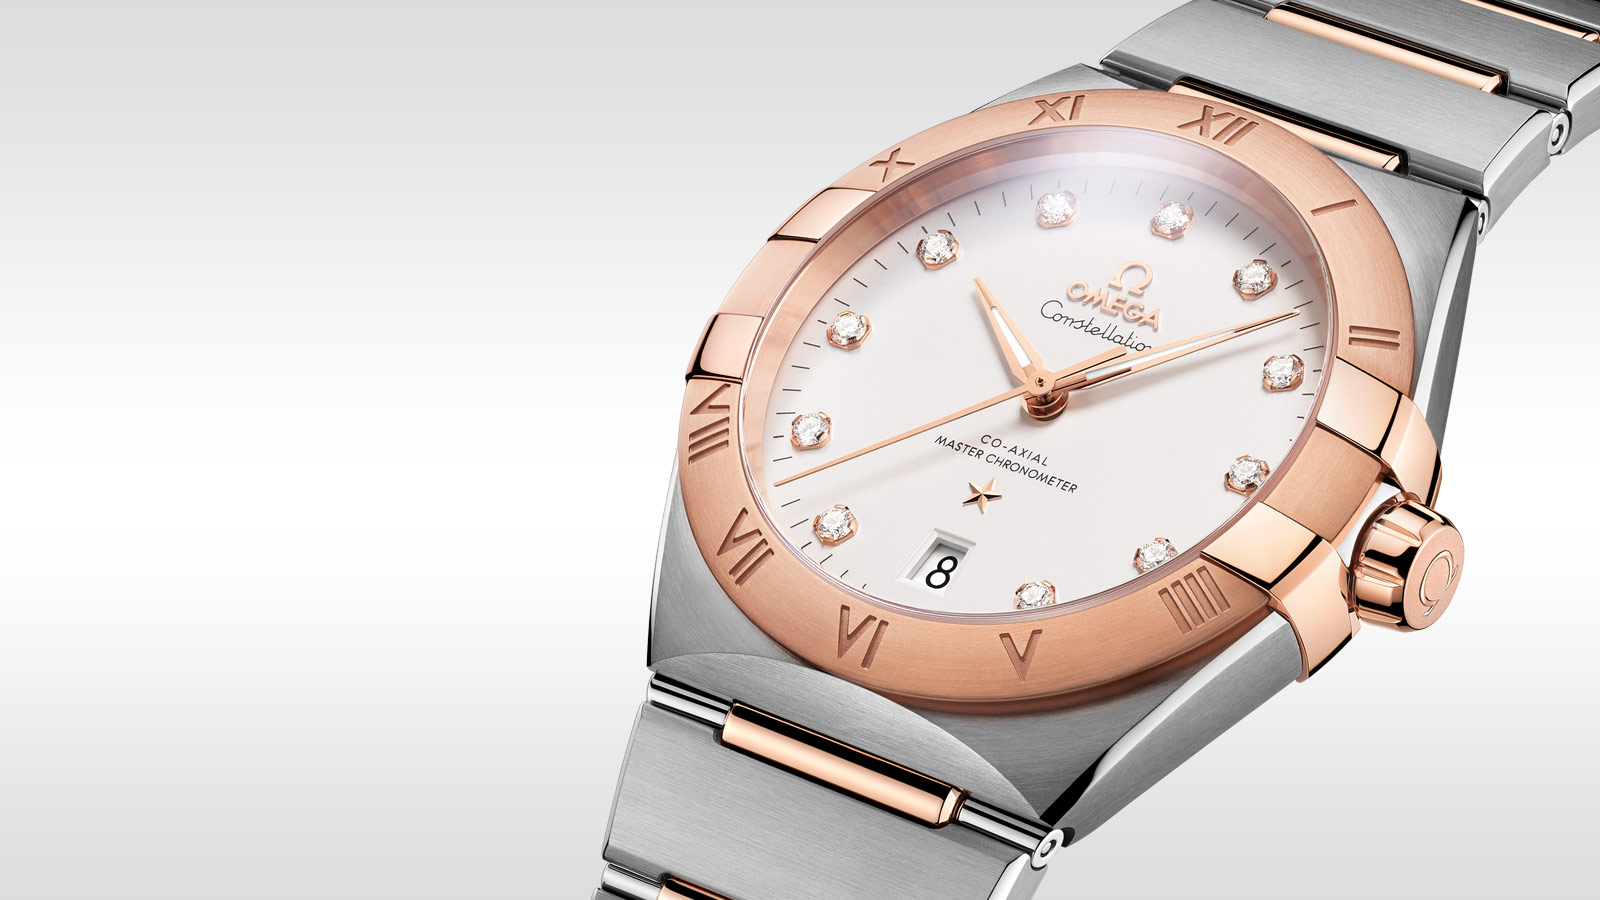 Constellation Constellation Constellation OMEGA Co‑Axial Master Chronometer 39mm - 131.20.39.20.52.001 - View 2